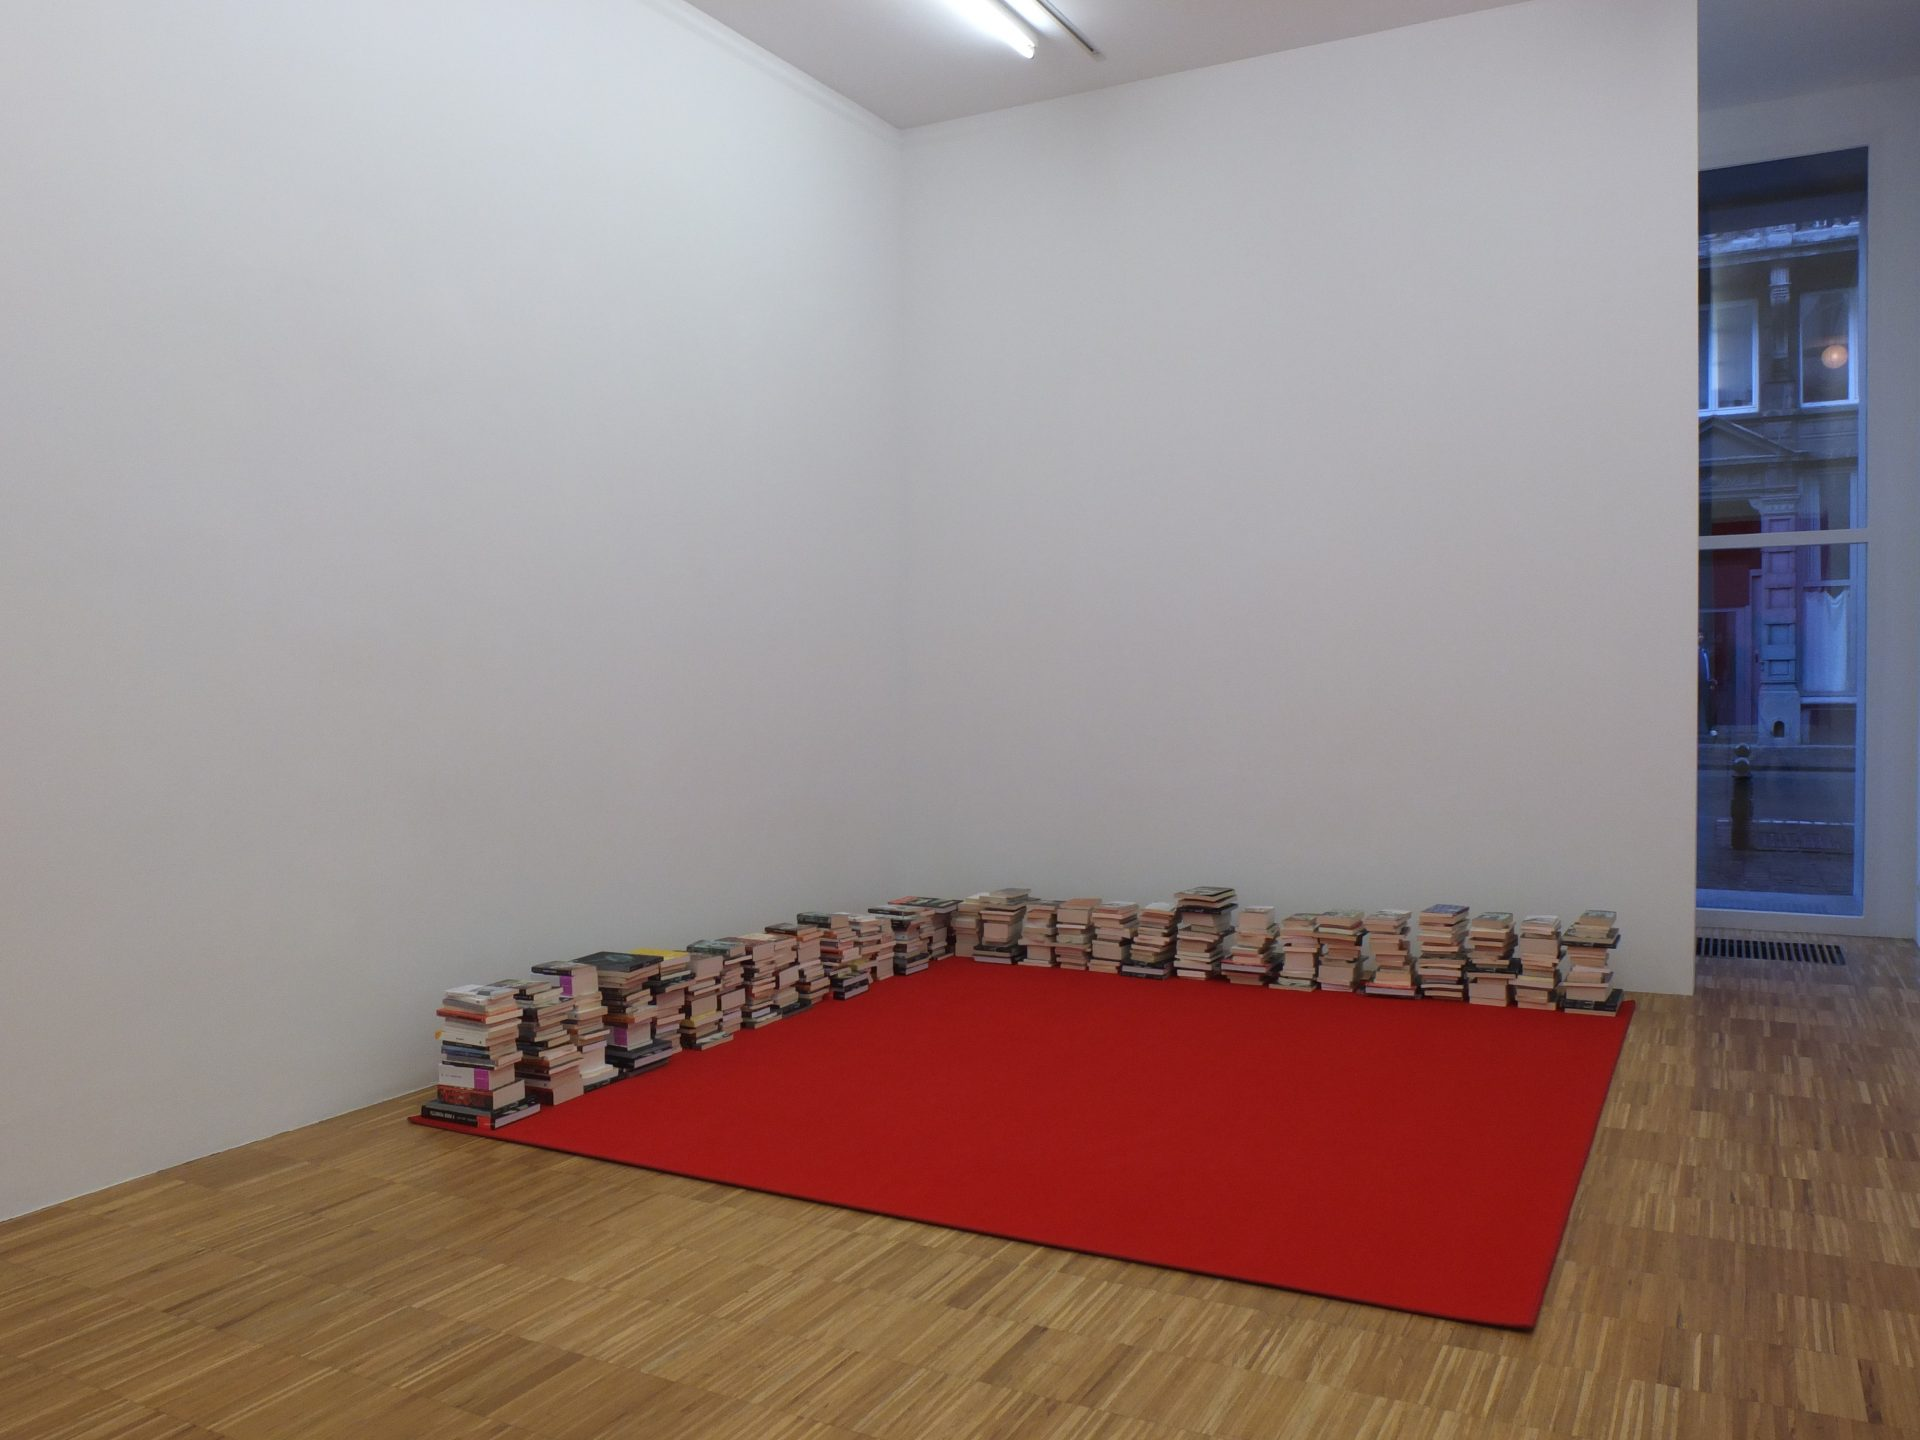 Dominique Gonzalez-Foerster, installation view at Jan Mot, 2014